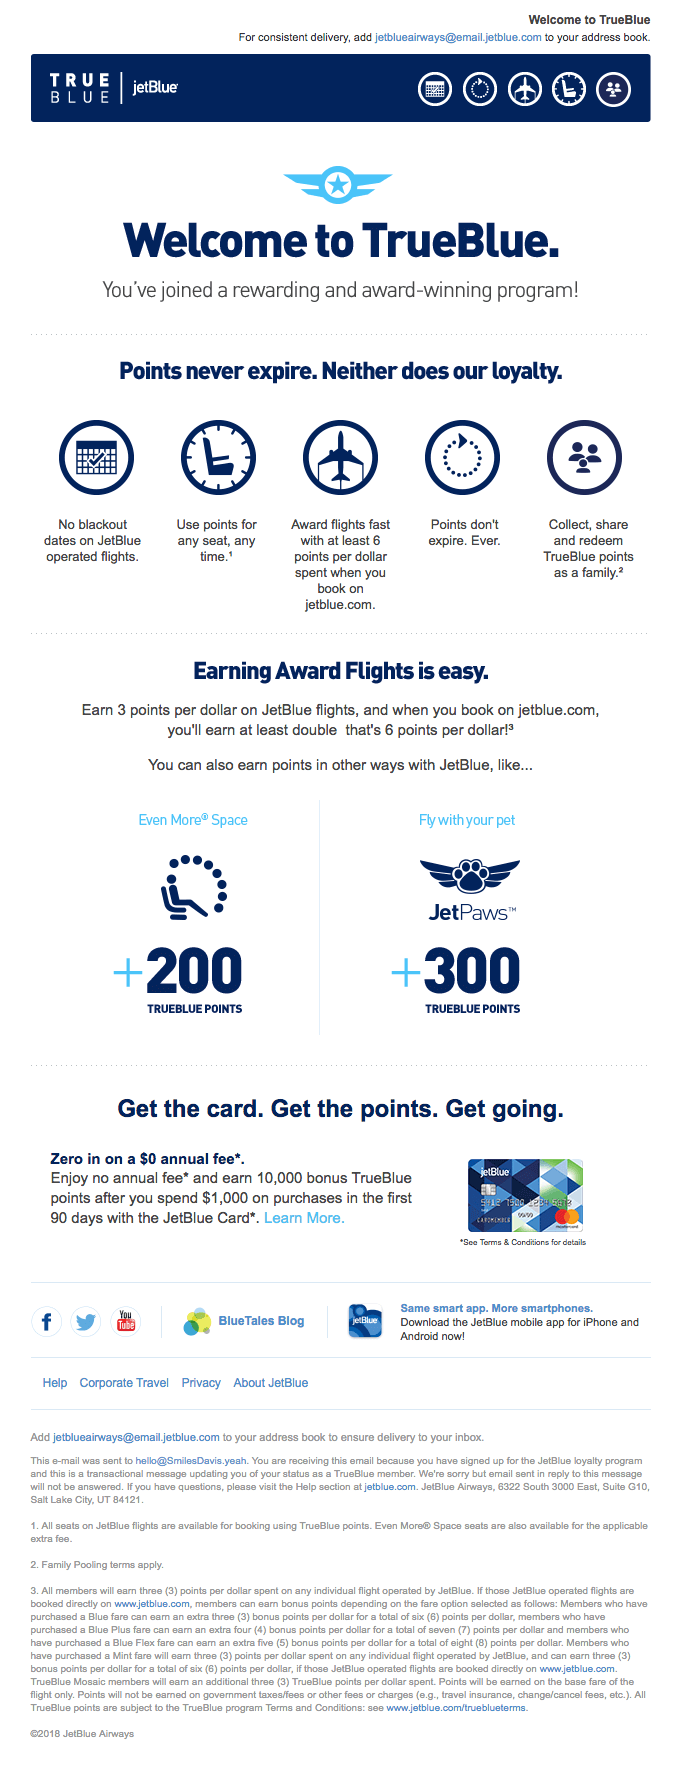 Welcome emails examples - JetBlue